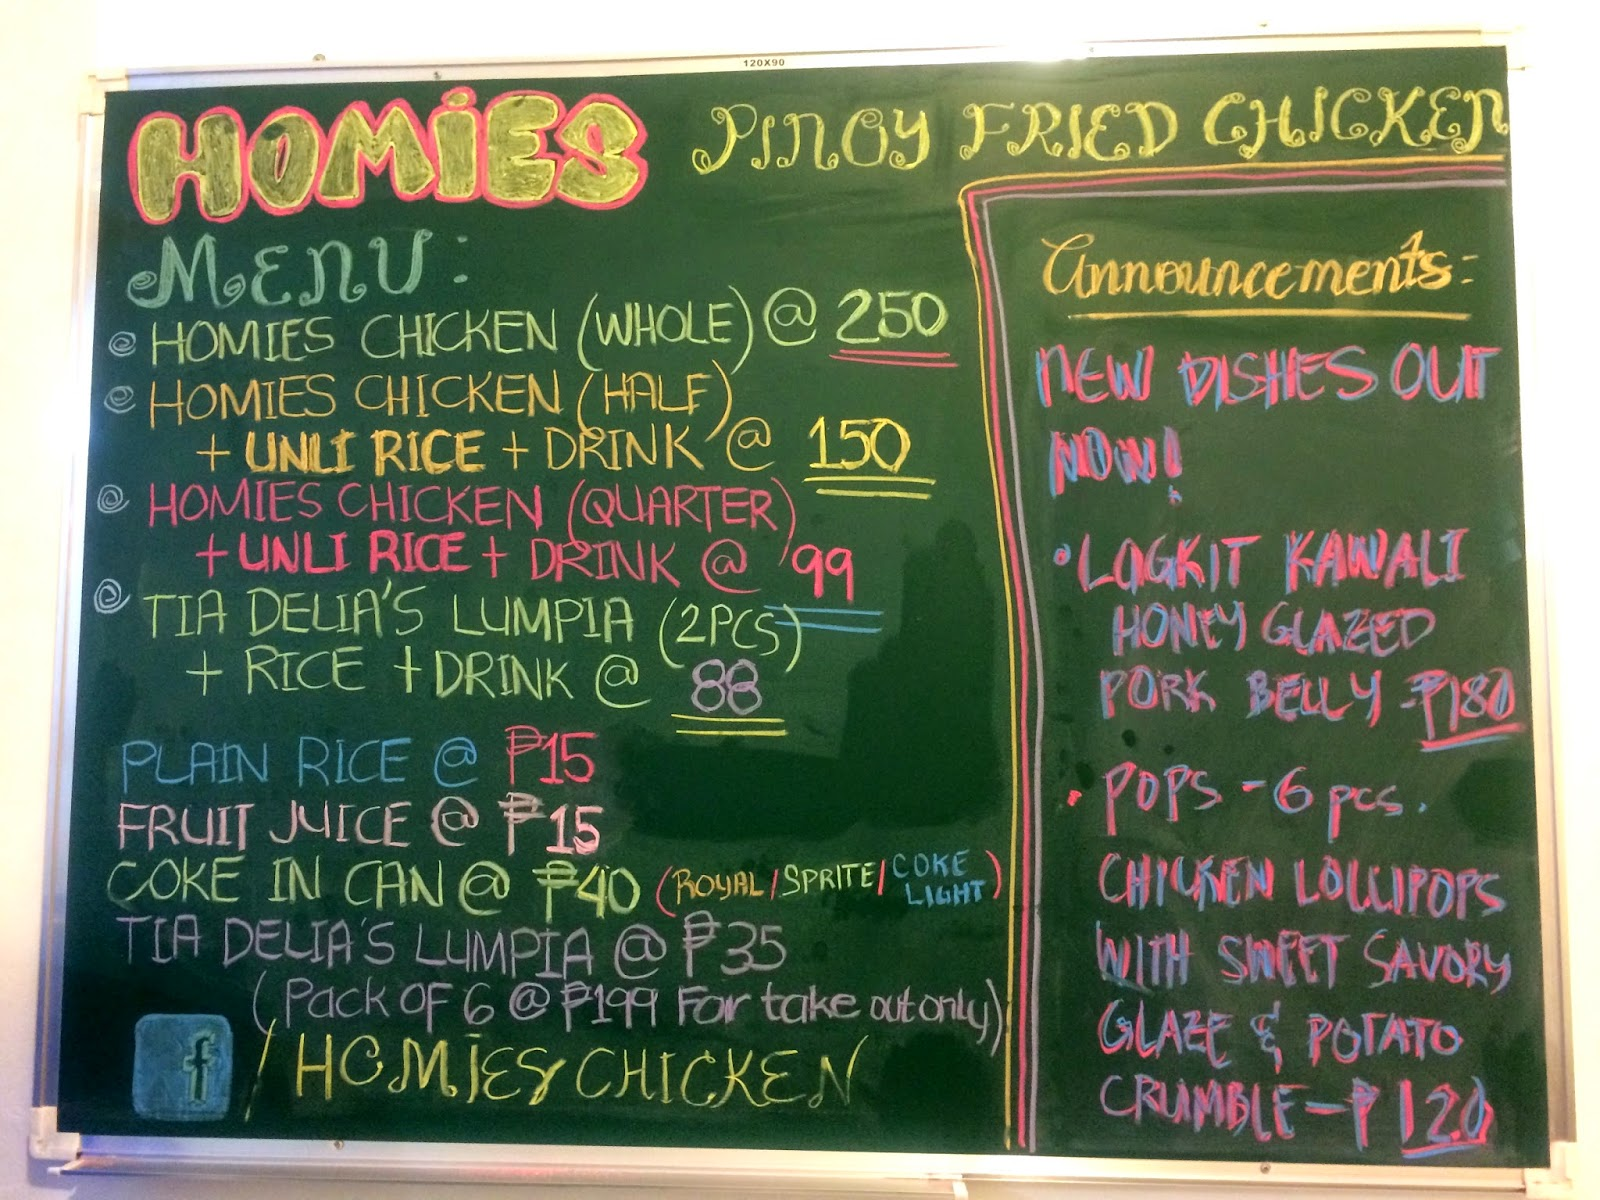 Nines vs. Food - Homies Pinoy Fried Chicken-13.jpg